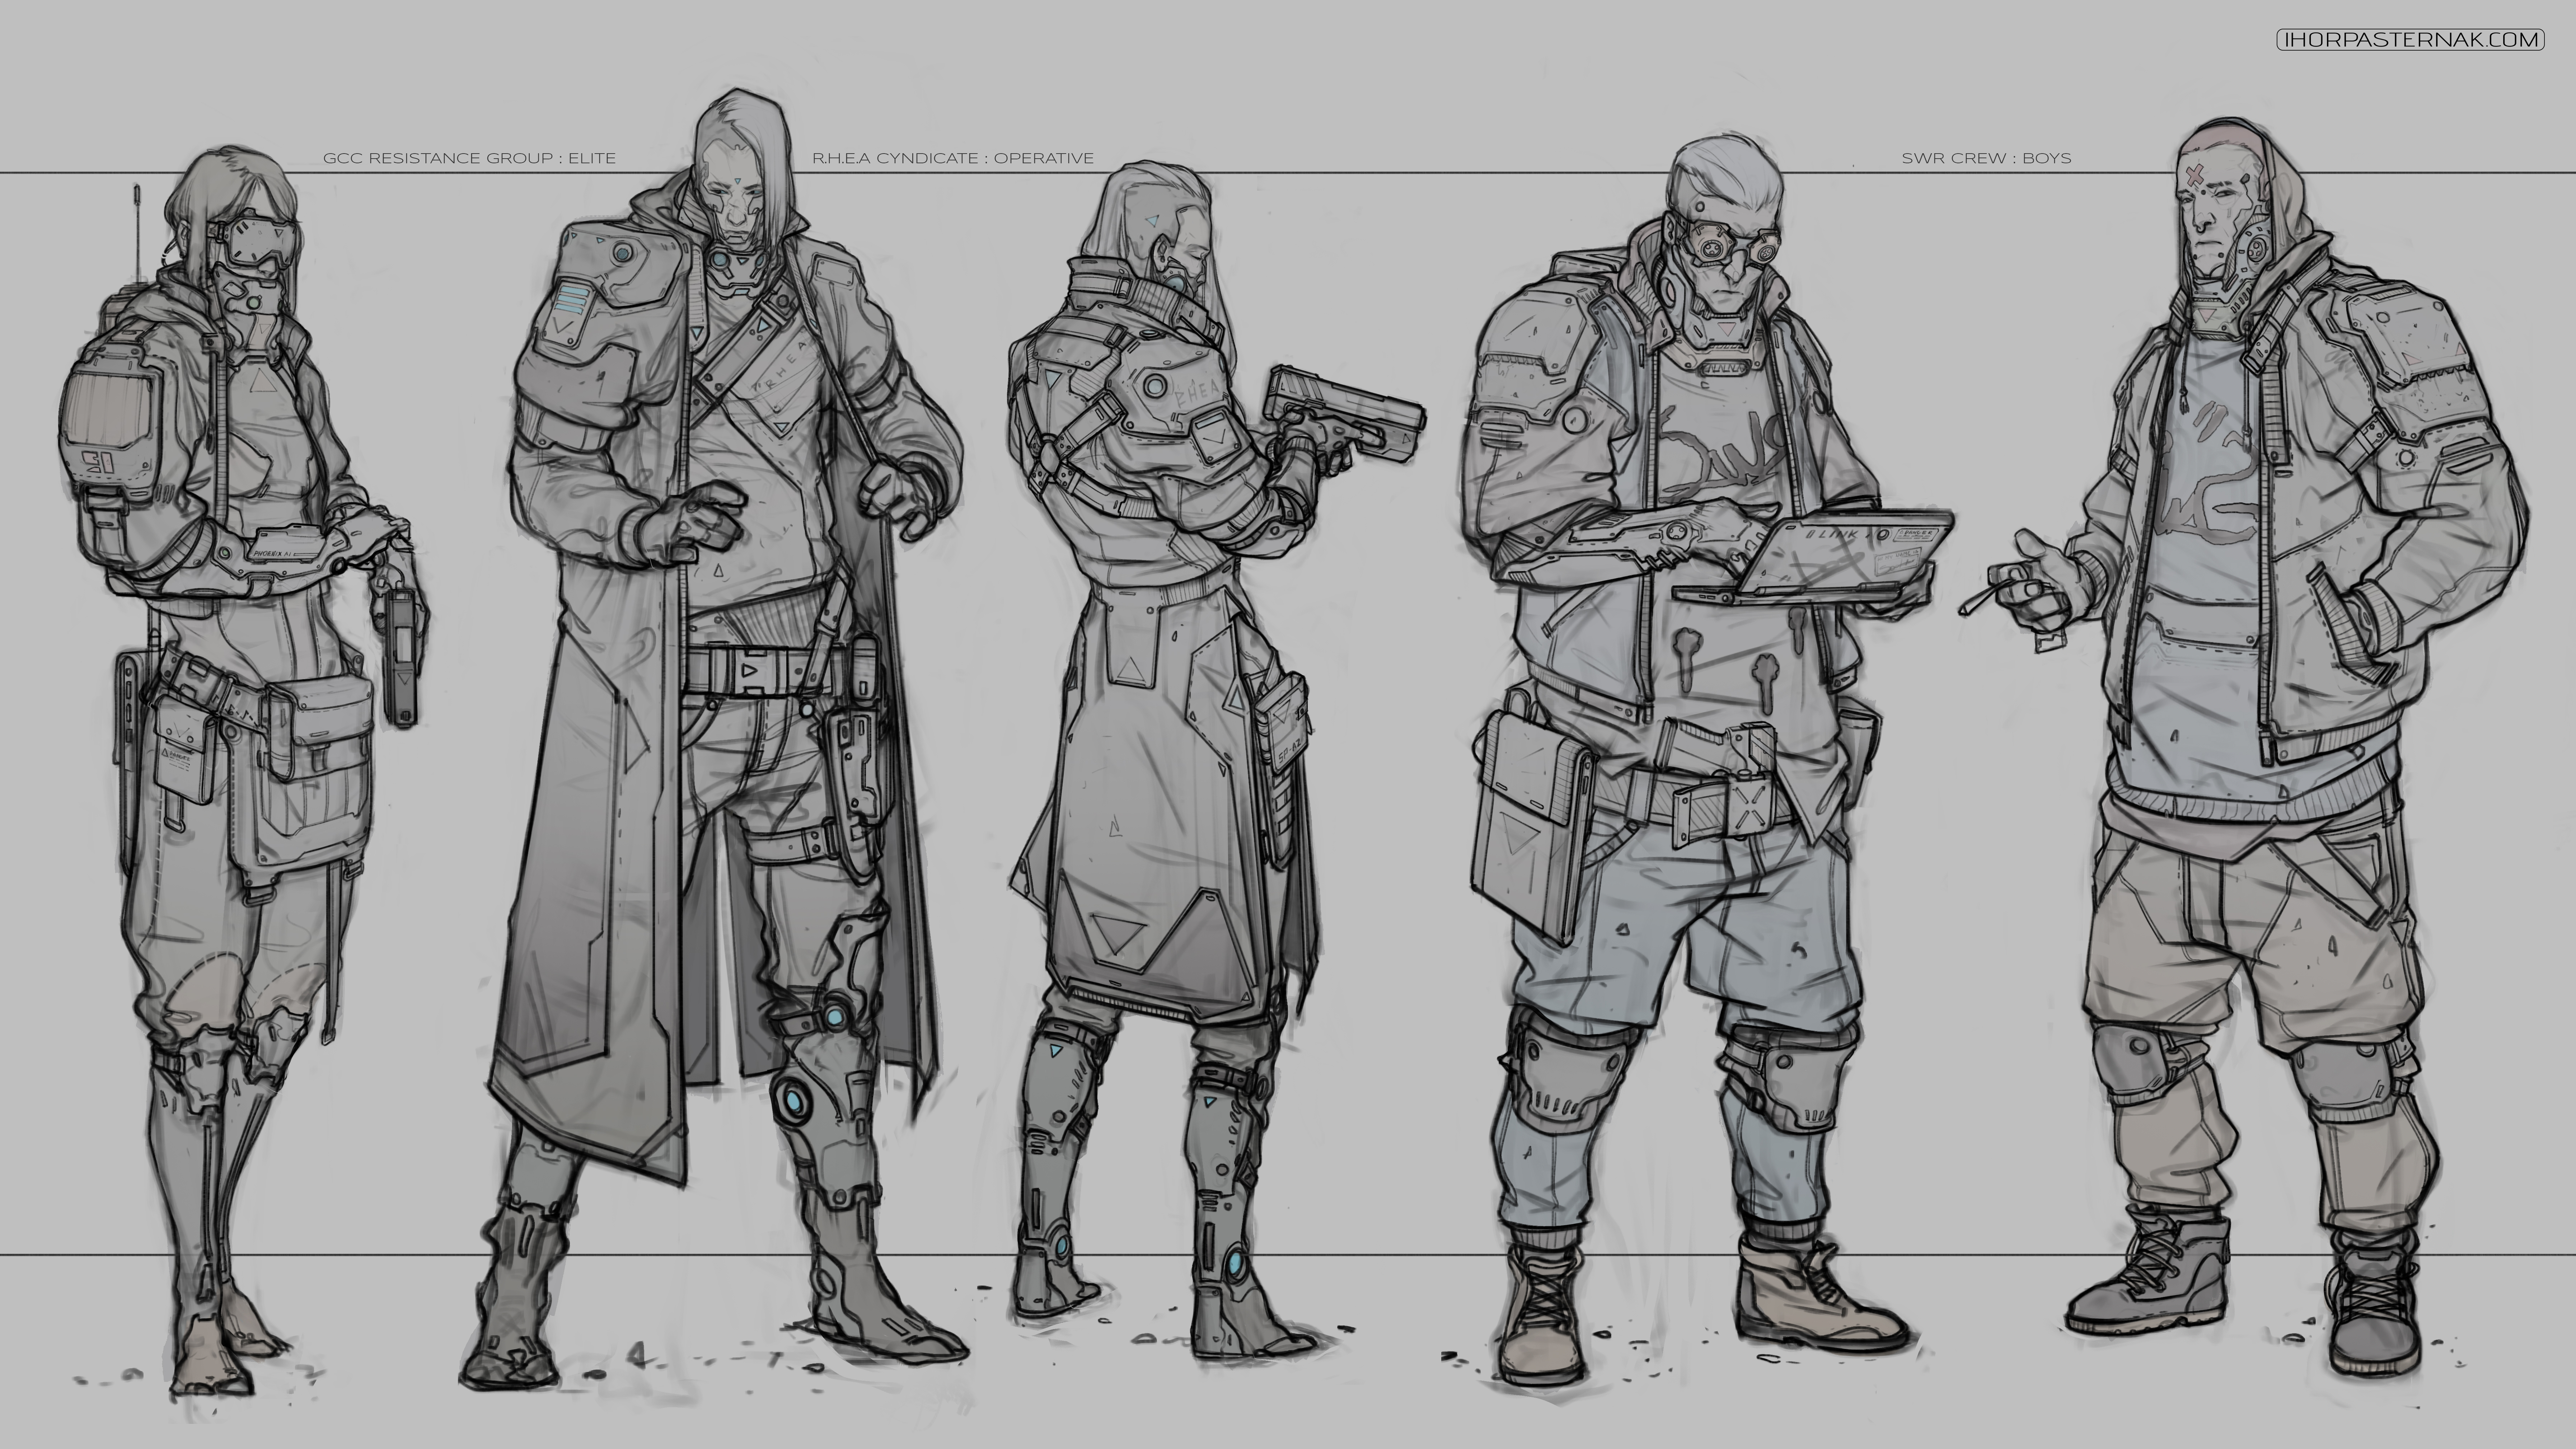 Force Character Design From Life Drawing Download : Cyberpunk characters by caisne on deviantart